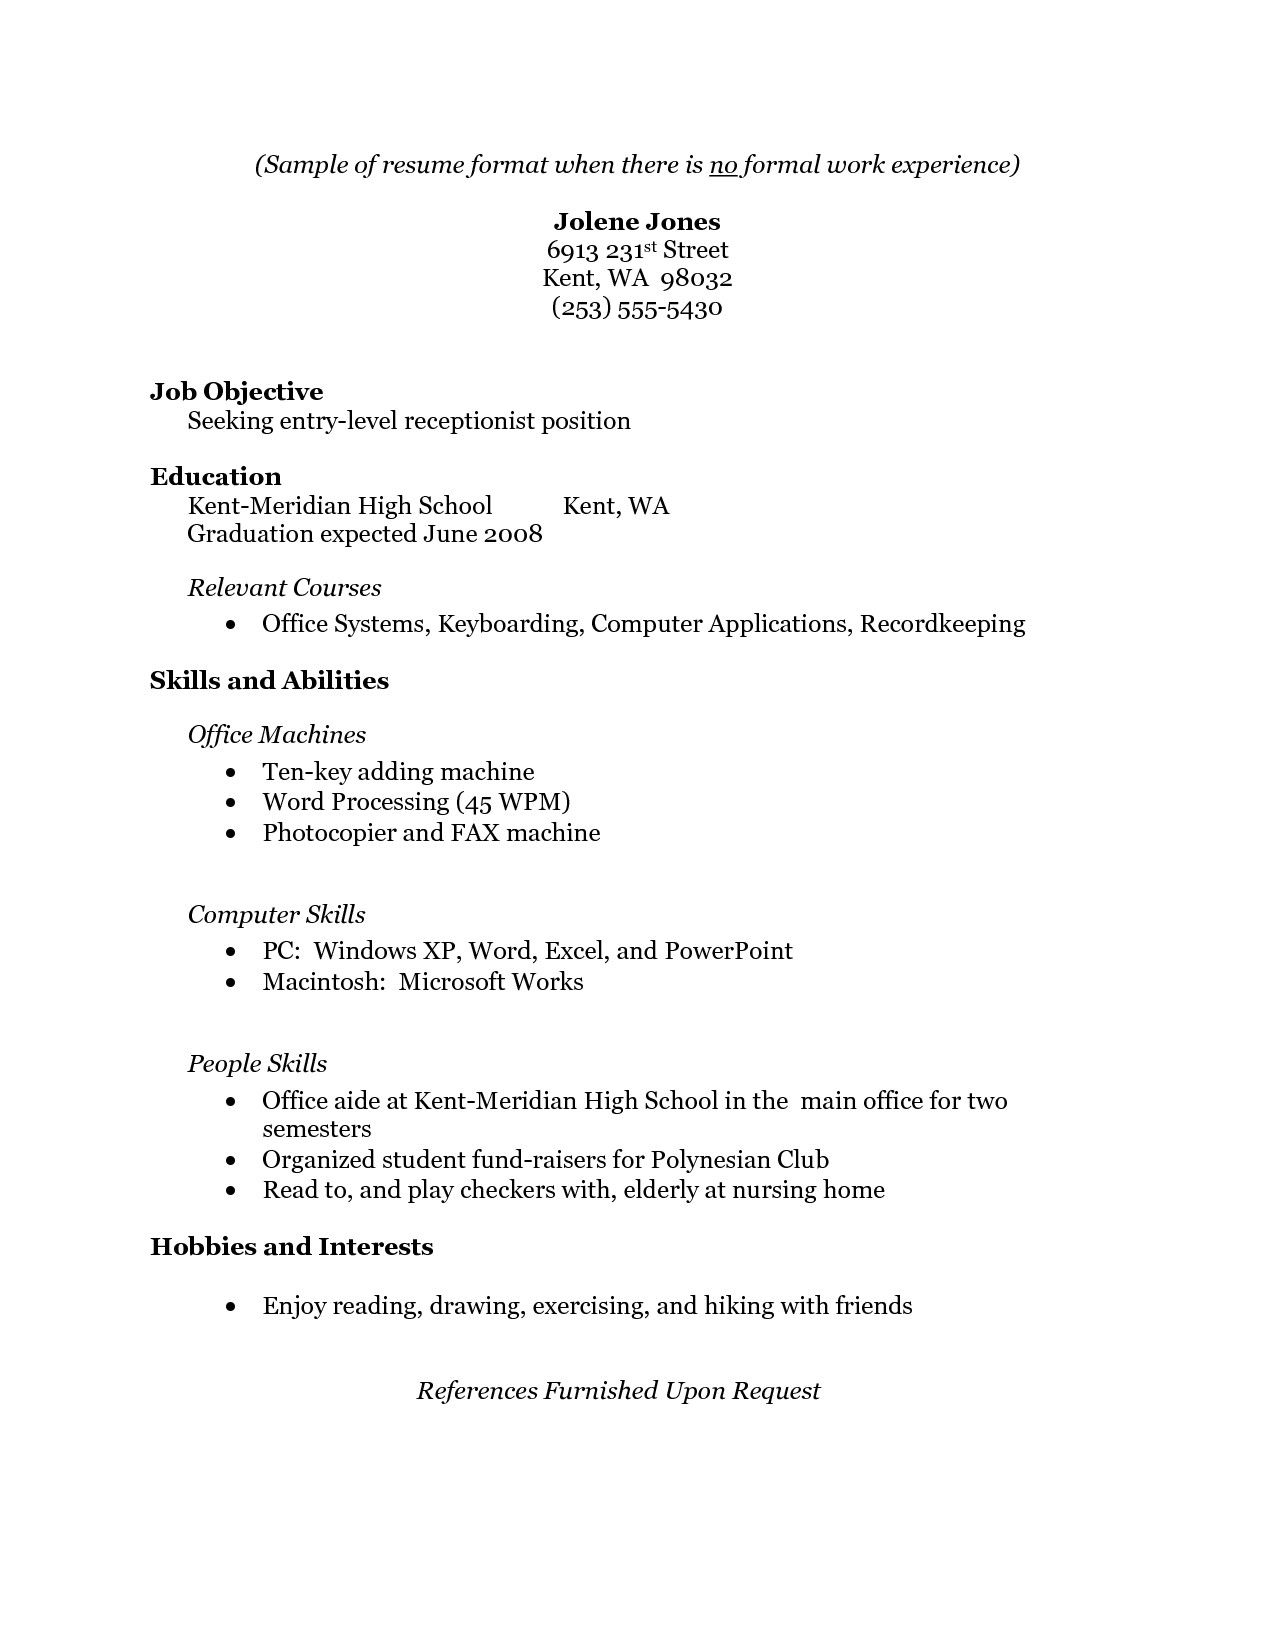 Free Resume Templates No Work Experience Freeresumetemplates